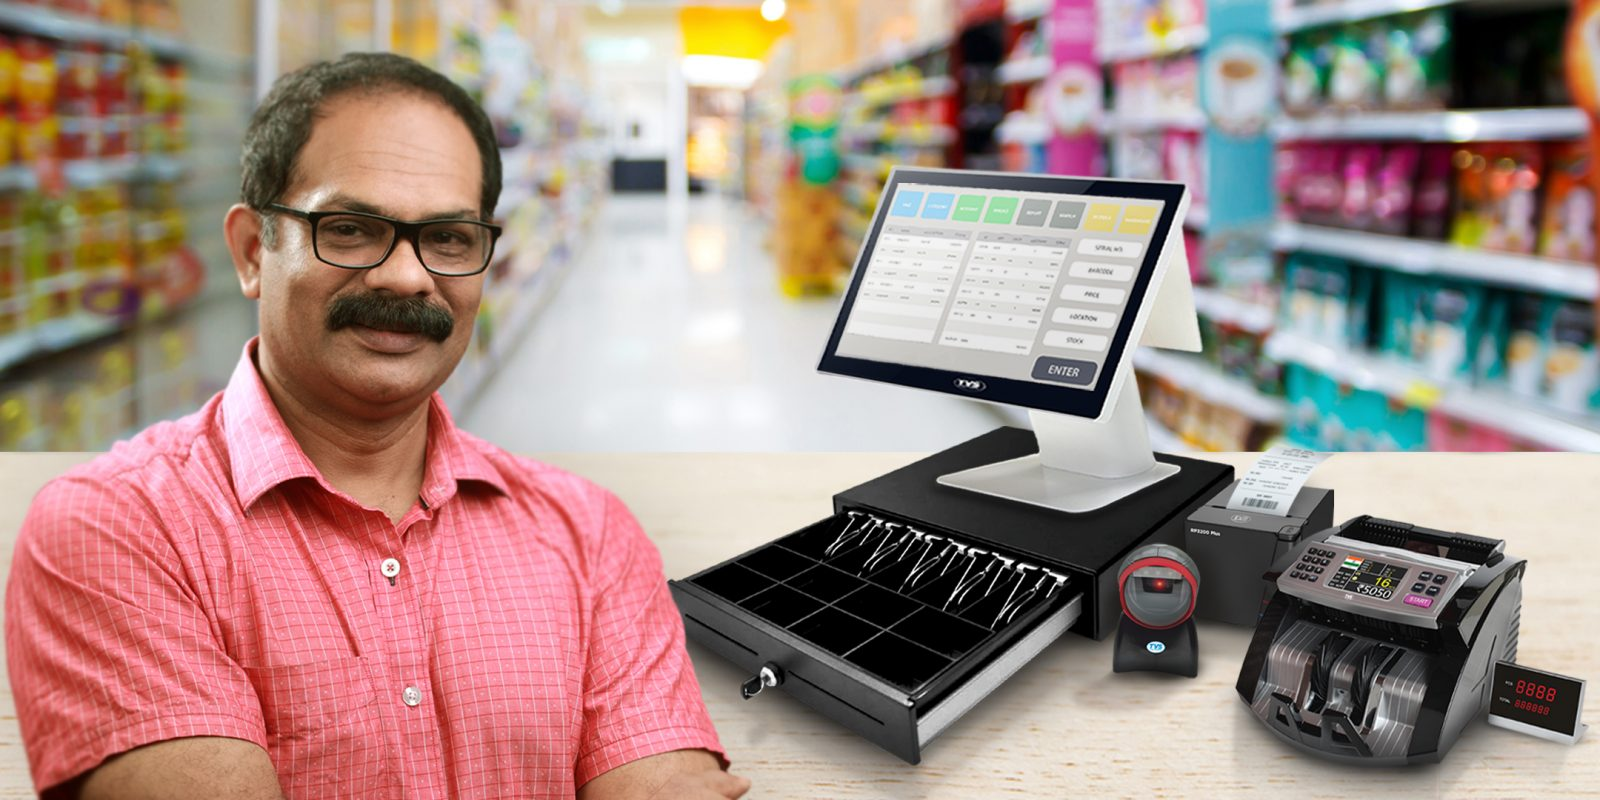 Guide To Finding The Right POS System For Your Business